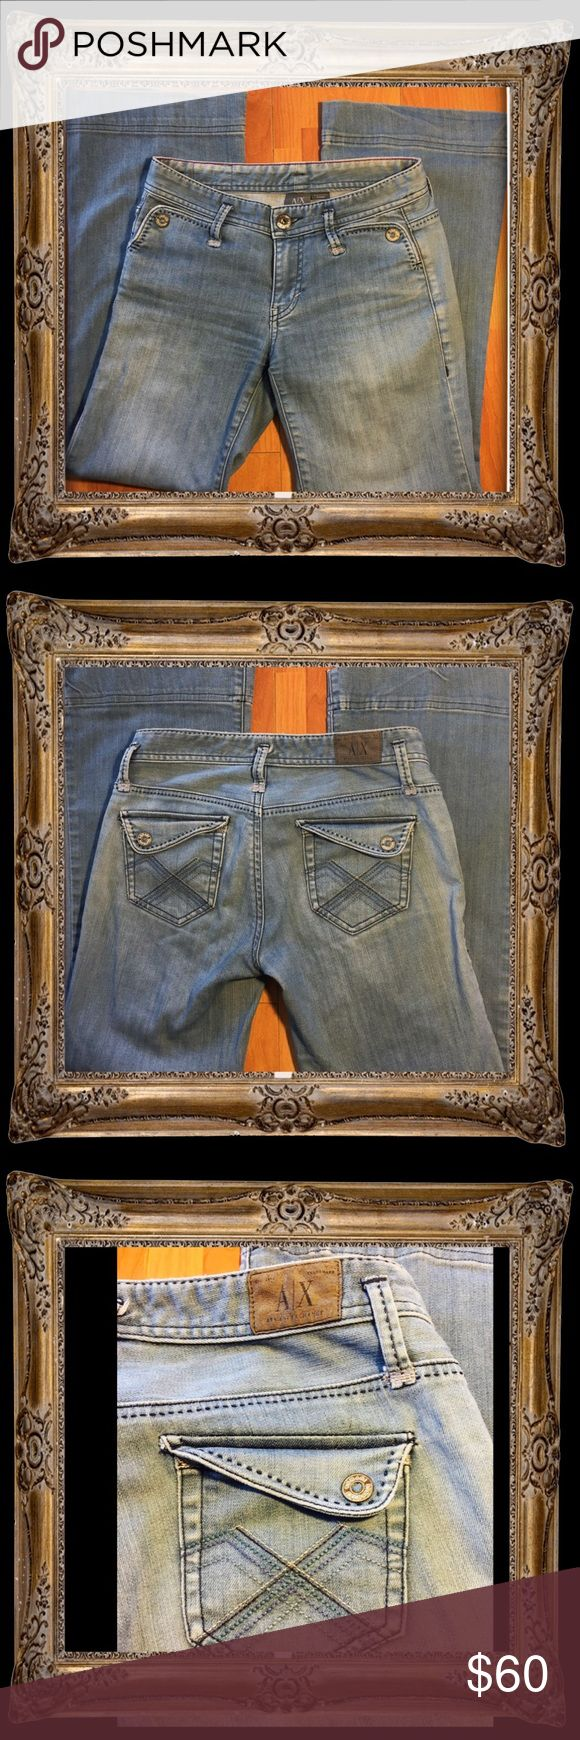 Armani Exchange Wide Leg Jeans Size 0 Short These wide leg jeans are another nod to the trending 90's. Cool button pockets and a faded wash add a relaxed feel to these trendy jeans. A/X Armani Exchange Jeans Flare & Wide Leg